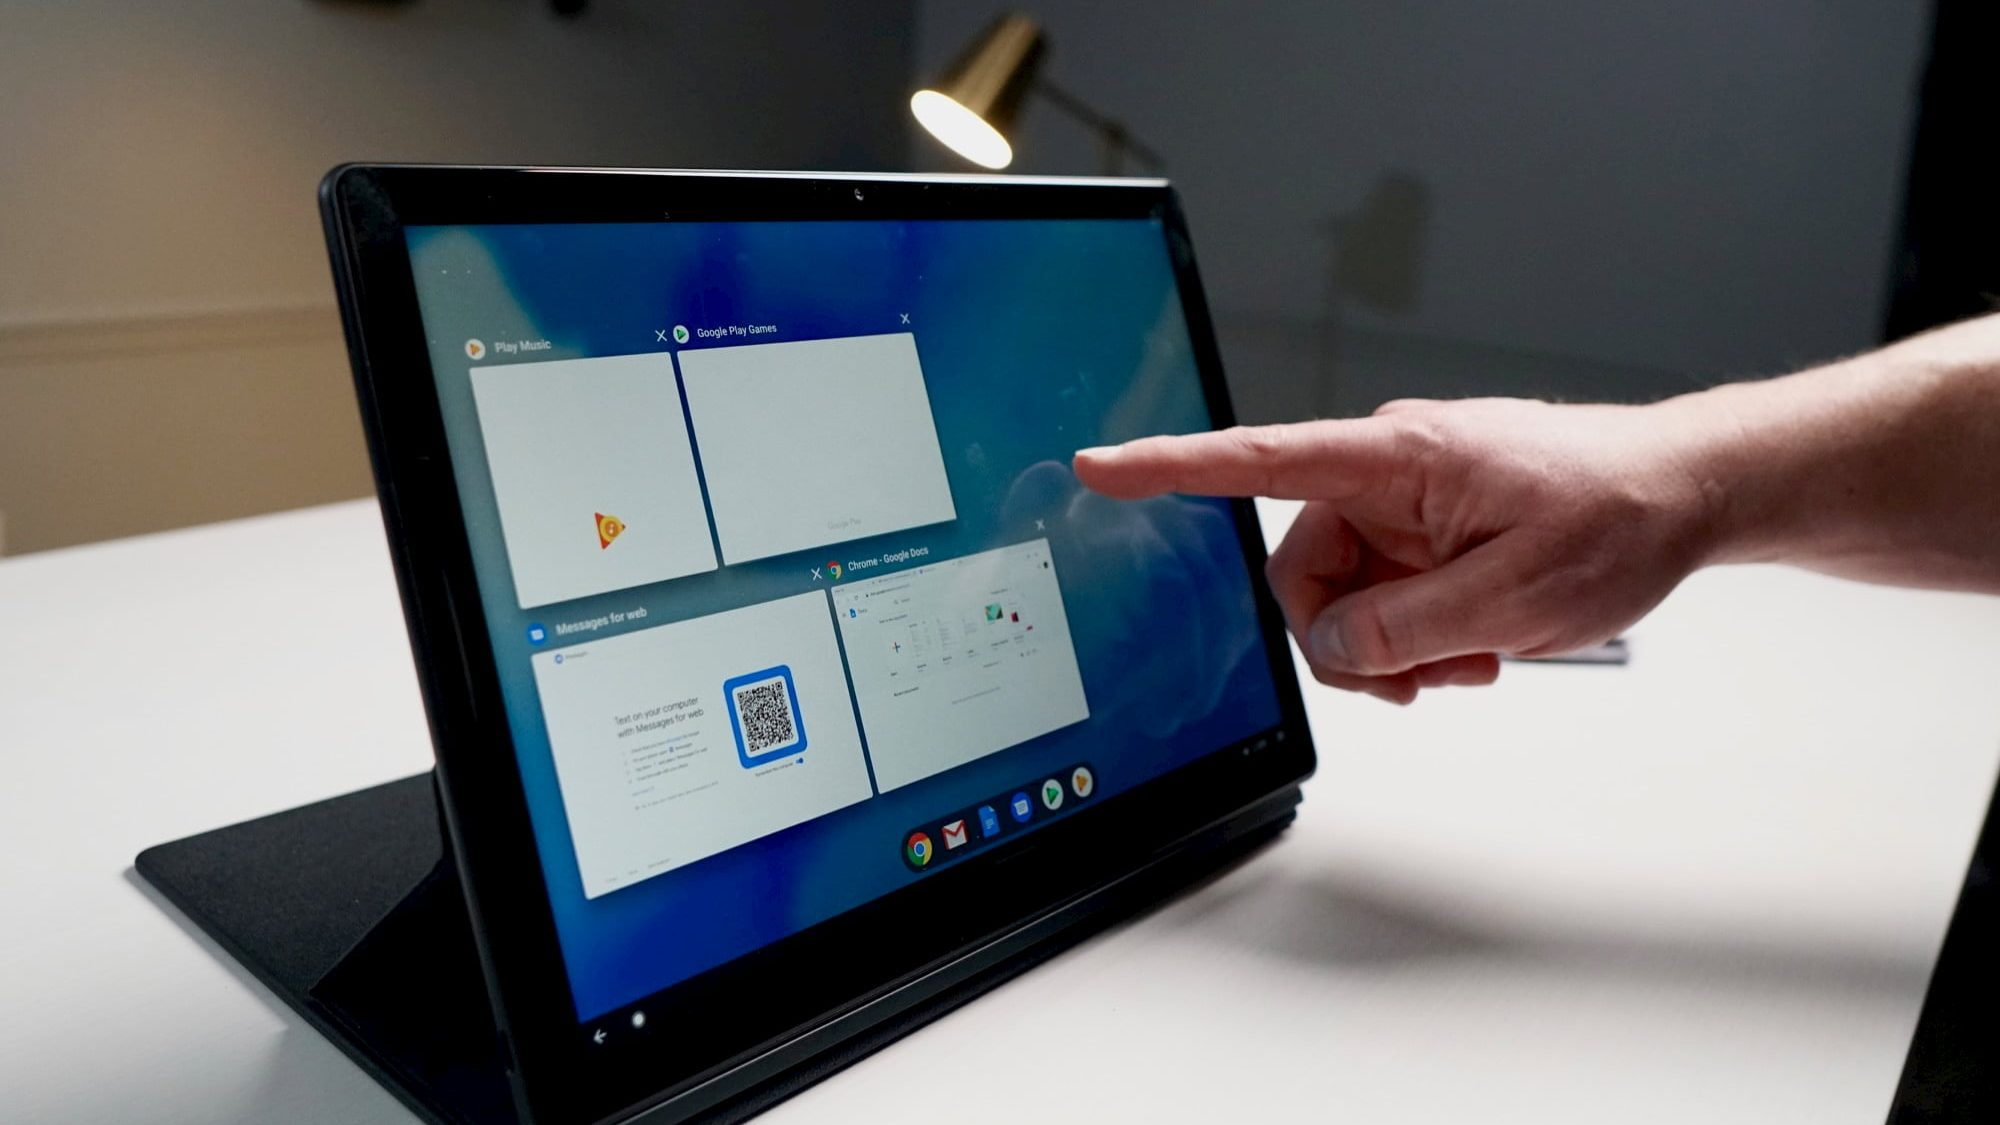 This handy trick helps you multitask better on a Chromebook in tablet mode